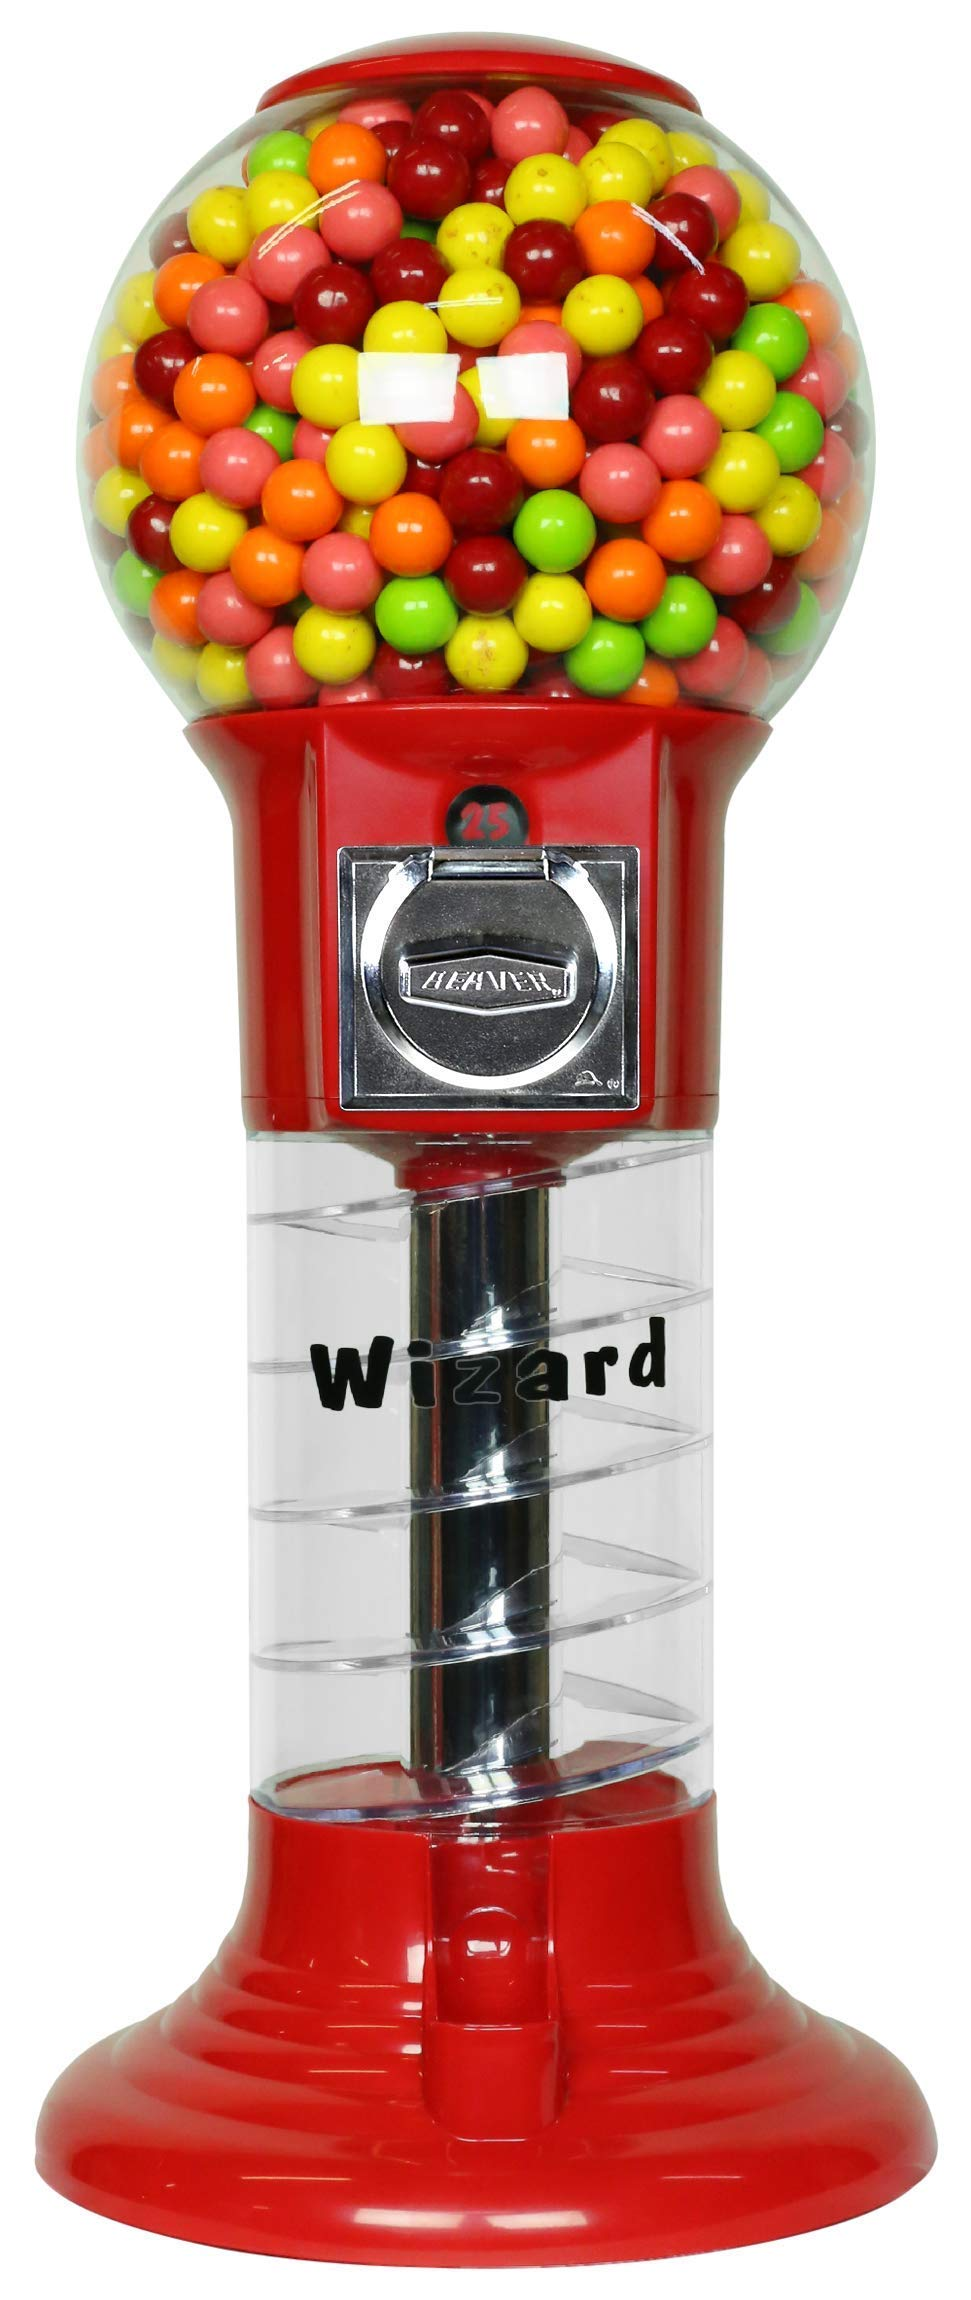 Spiral Gumball Machine Lil Wizard 27 inch - set up for $0.25 - Gumballs 1 inch - Toys in Round Capsules - 1'' Bouncy Balls 25 mm - Red Vending Gum Machine - Great Gift for Kids by Global Gumball (Image #1)